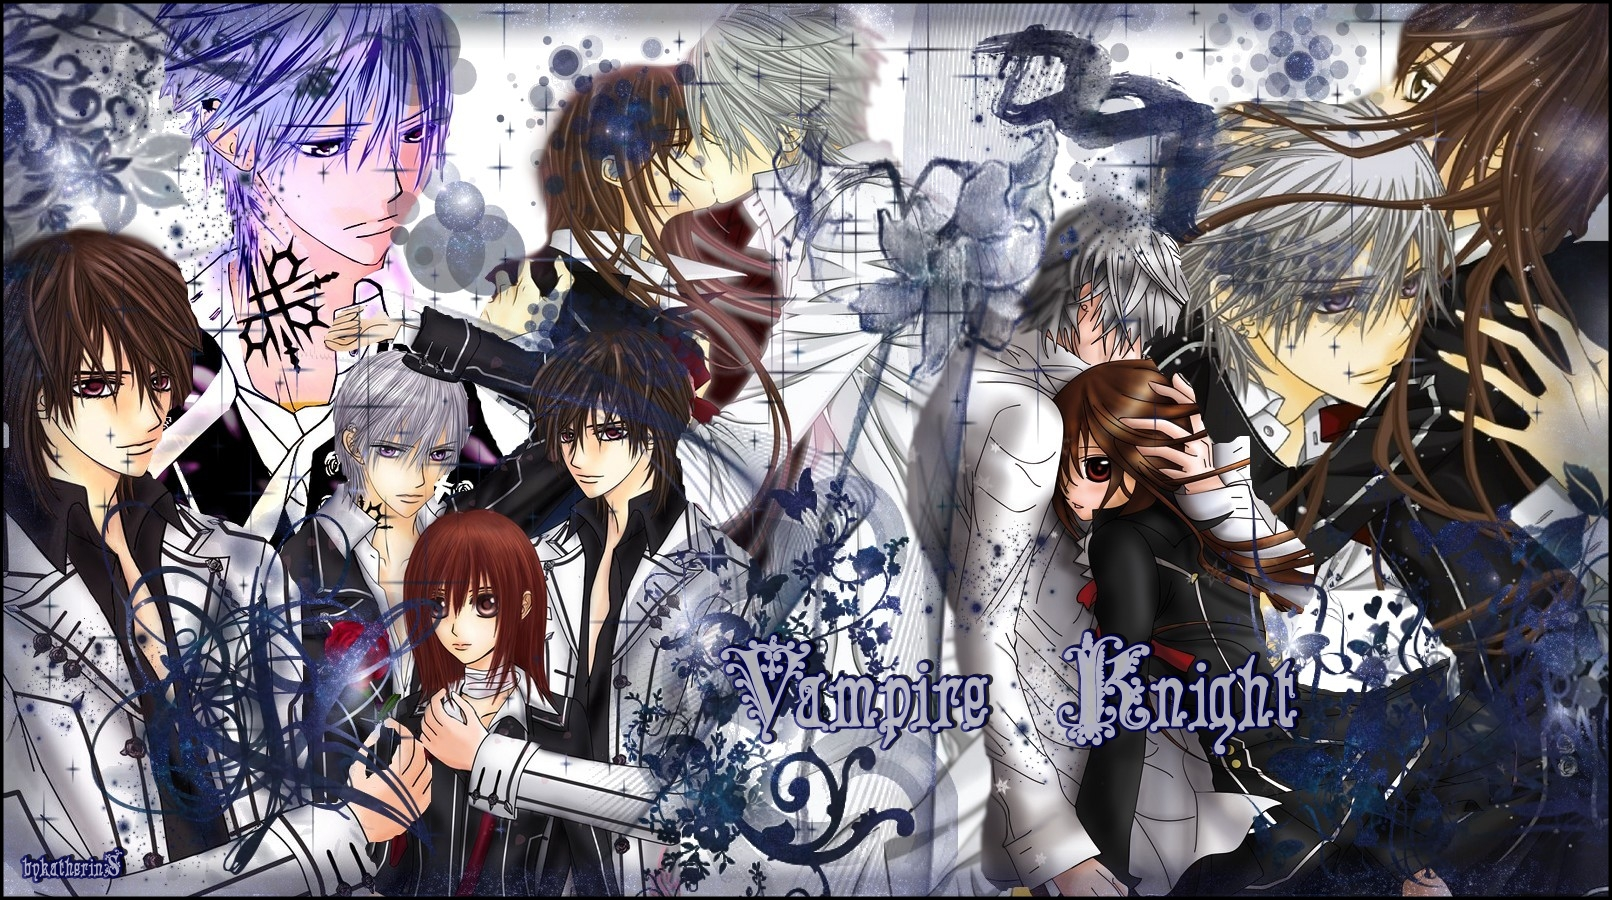 Vampire knight wallpaper and background image 1612x900 - Vampire knight anime wallpaper ...